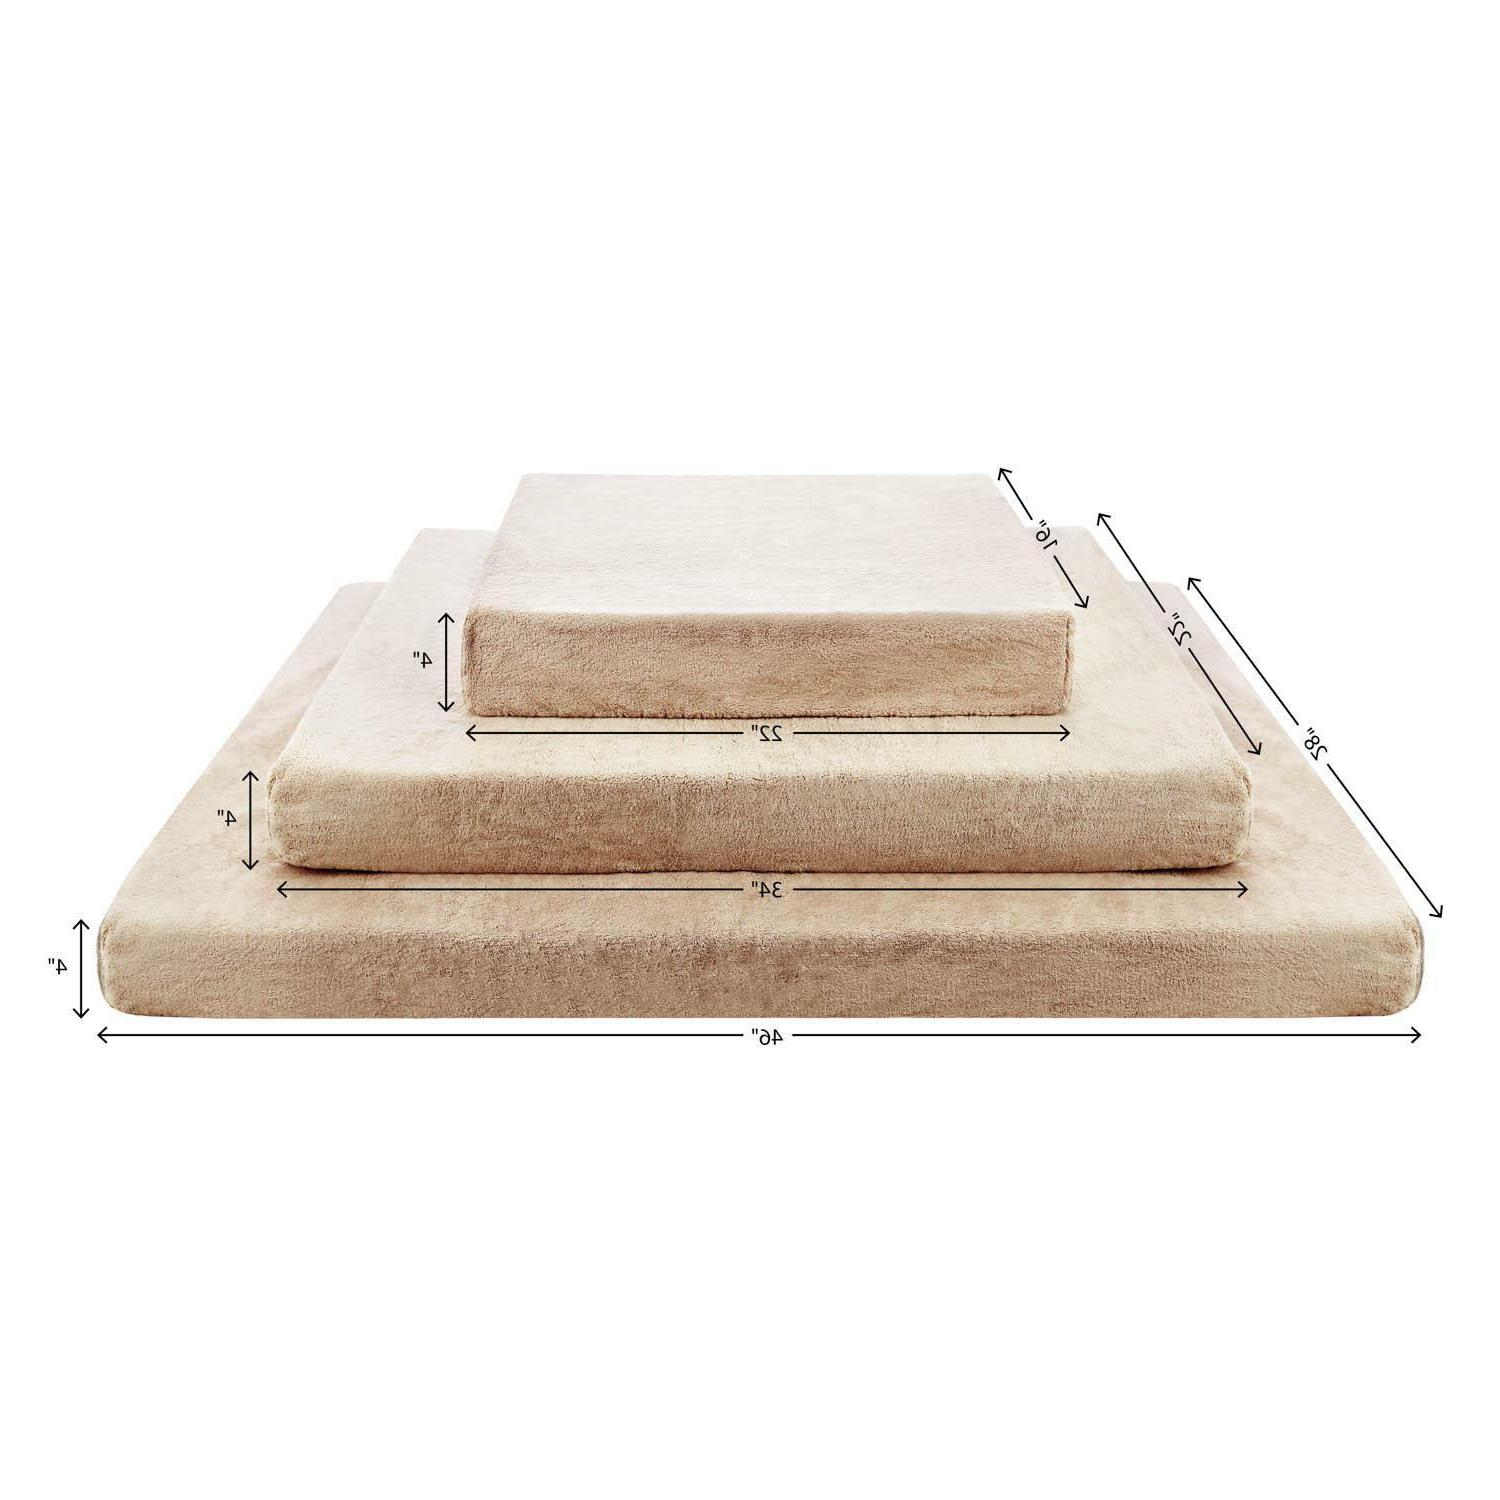 BRINDLE Foam BED with Removable and Waterproof Liner